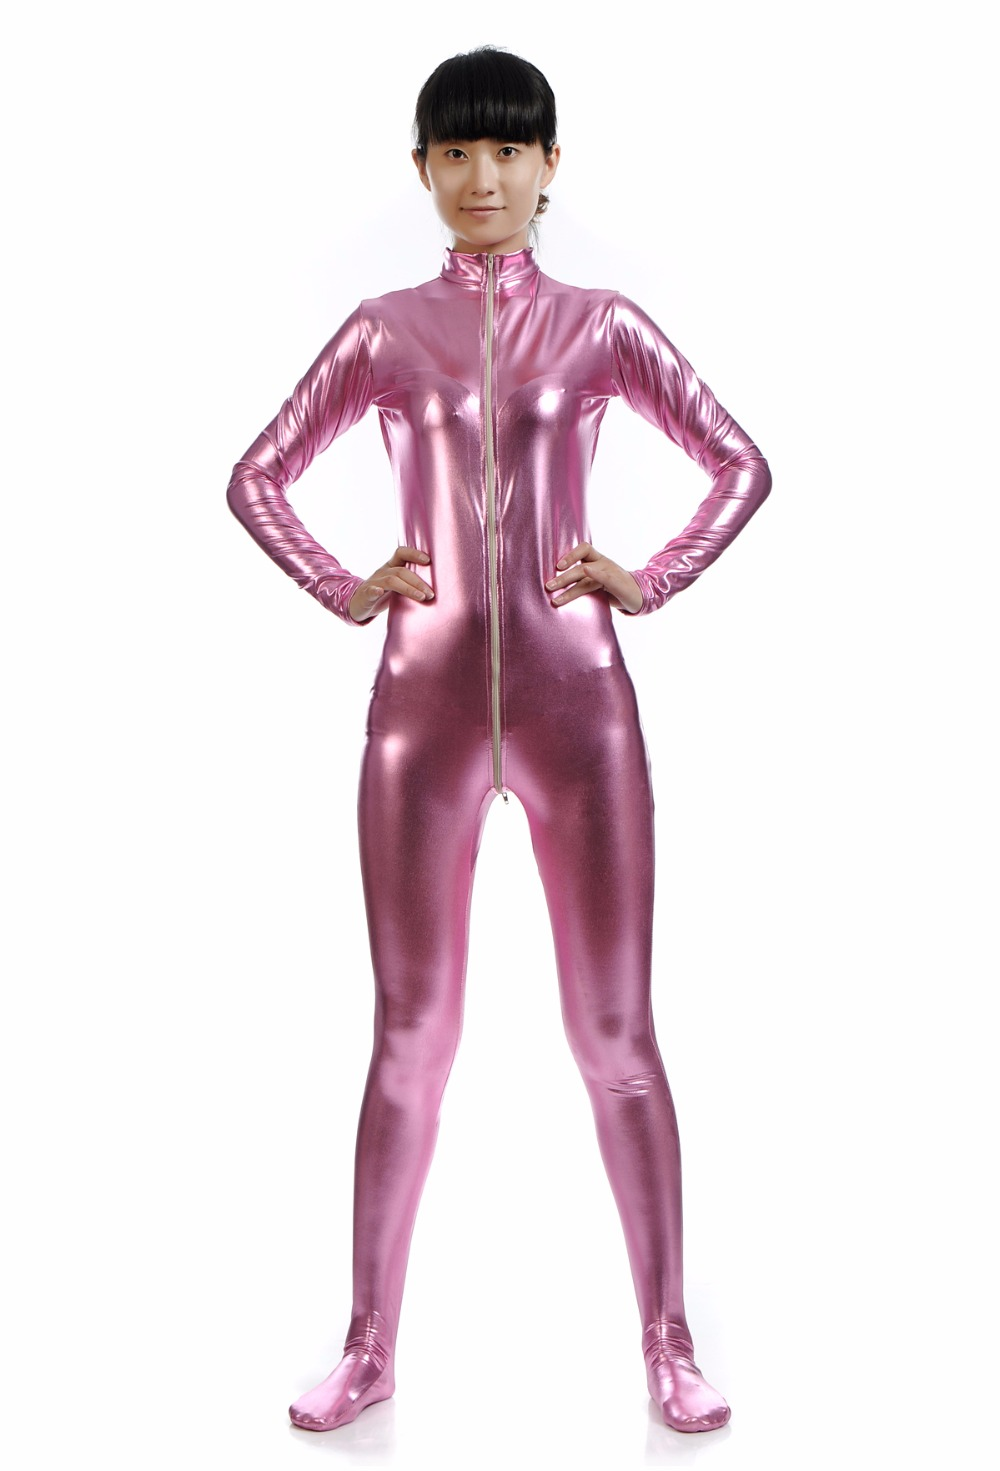 Women Plus Size Pink Zentai Suit Kids One Piece Lycra Mock Neck Unitard Dancewear Full Zentai Bodysuits Shiny Metallic Catsuits